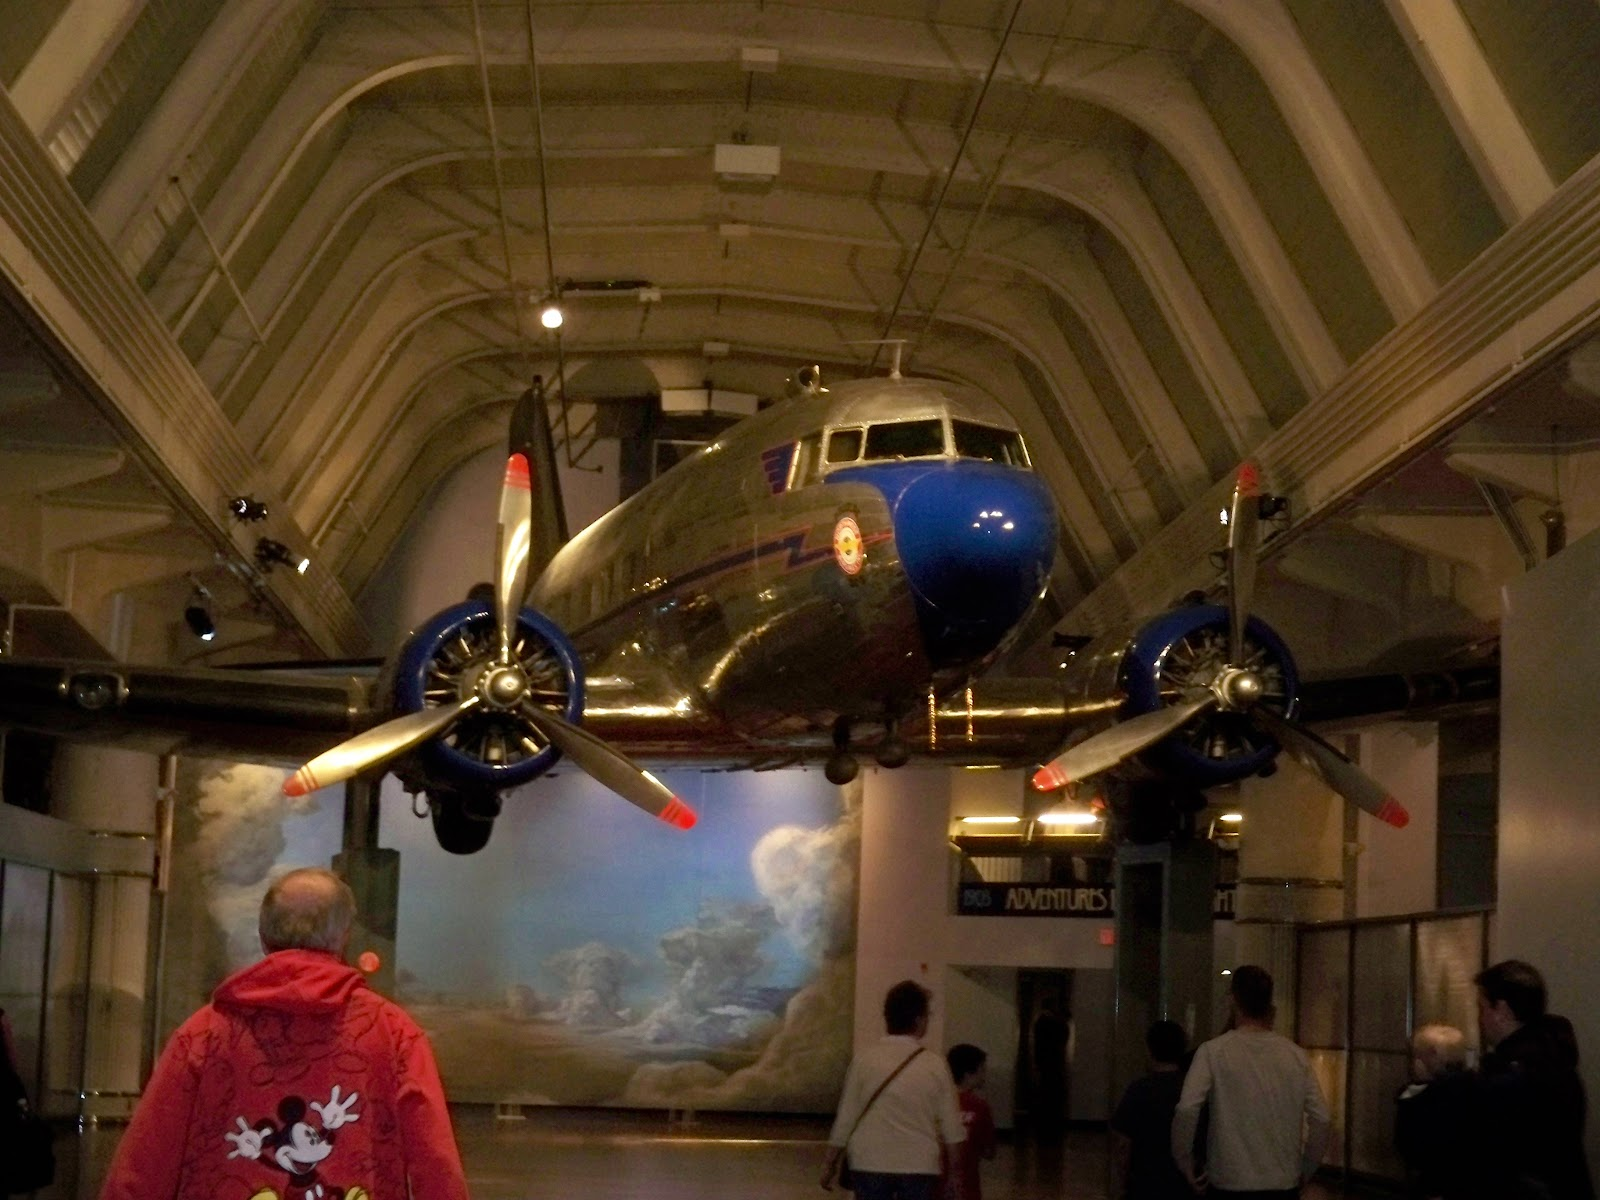 henry ford essay english henry ford essay henry ford a progressive  the henry ford museum part of red tail squadron the henry ford museum part 1 of